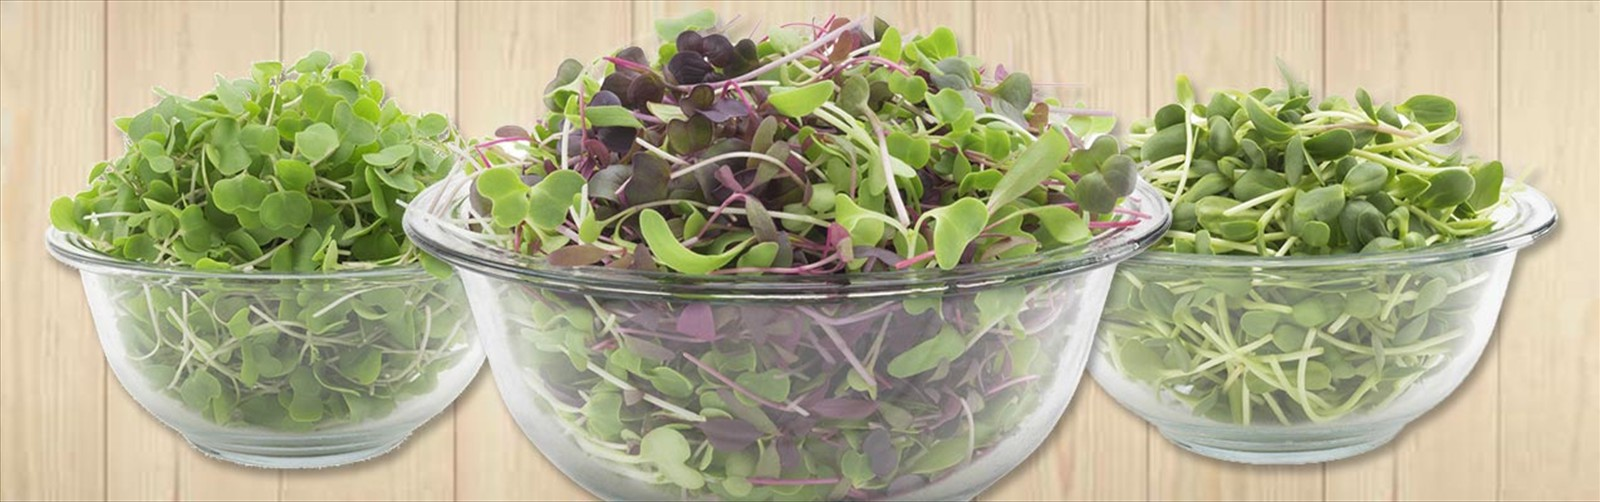 Micro-greens salad mix organic vegetables super fresh greens salad